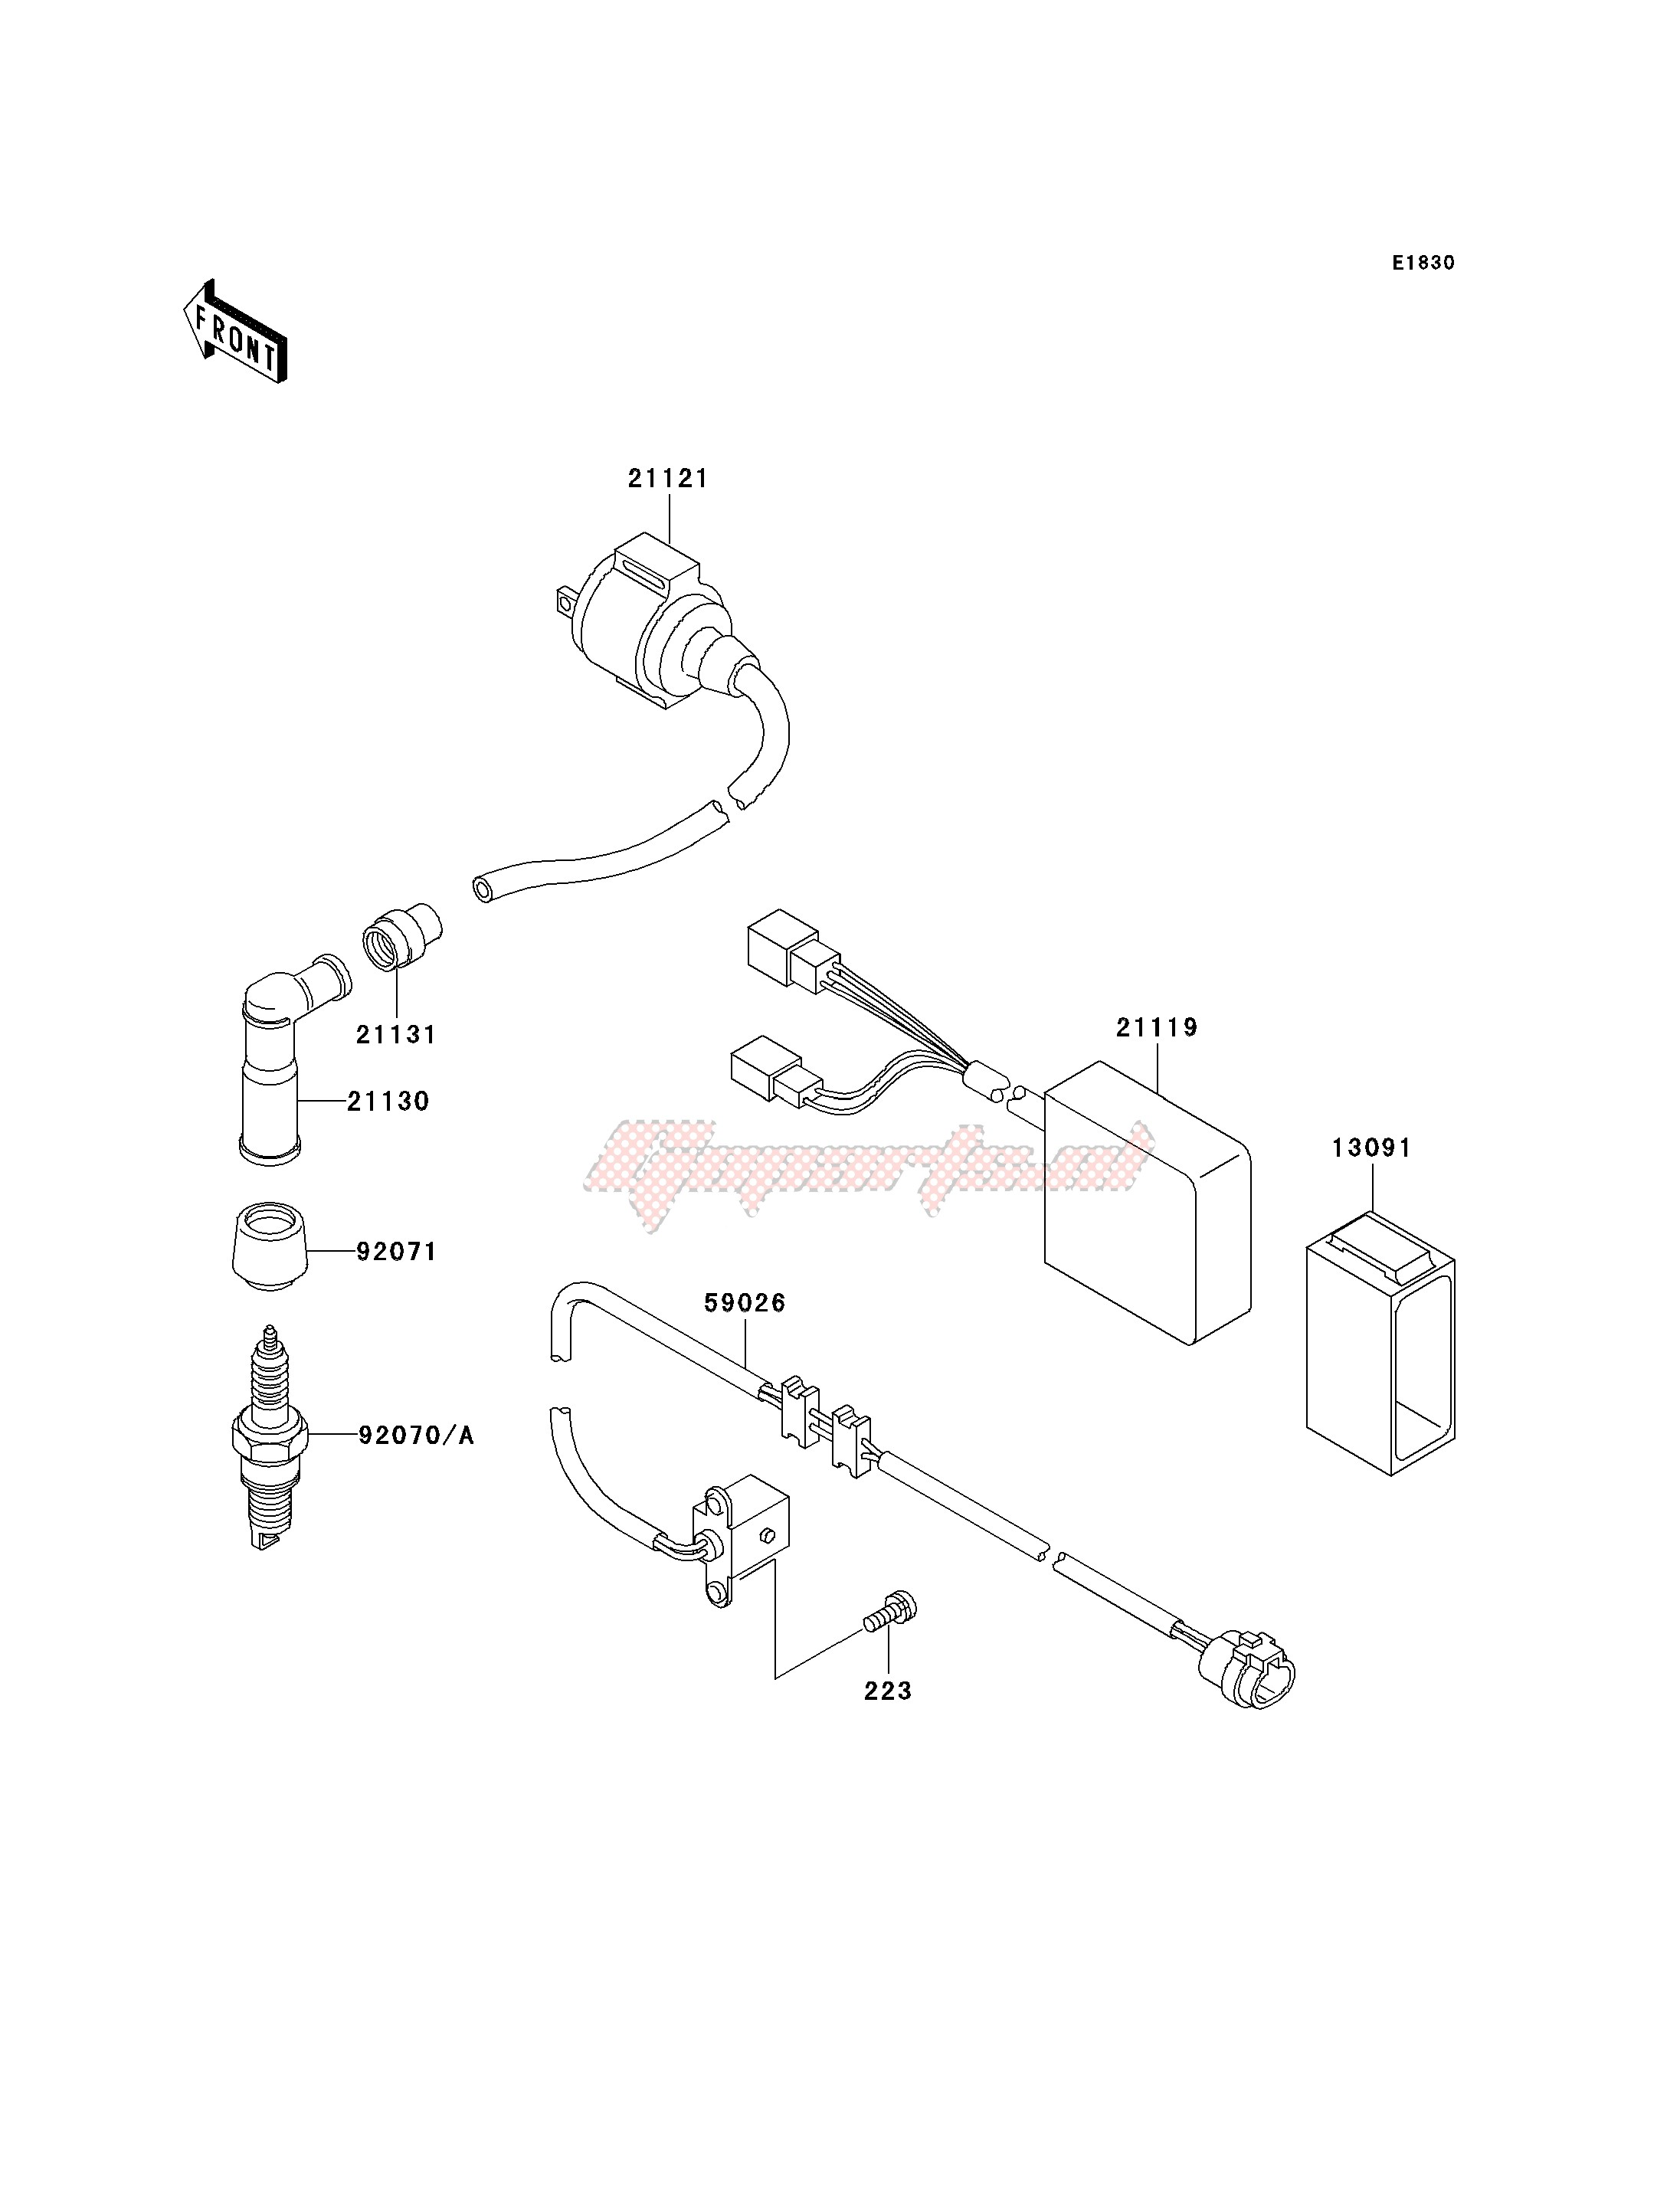 Electrical-IGNITION SYSTEM